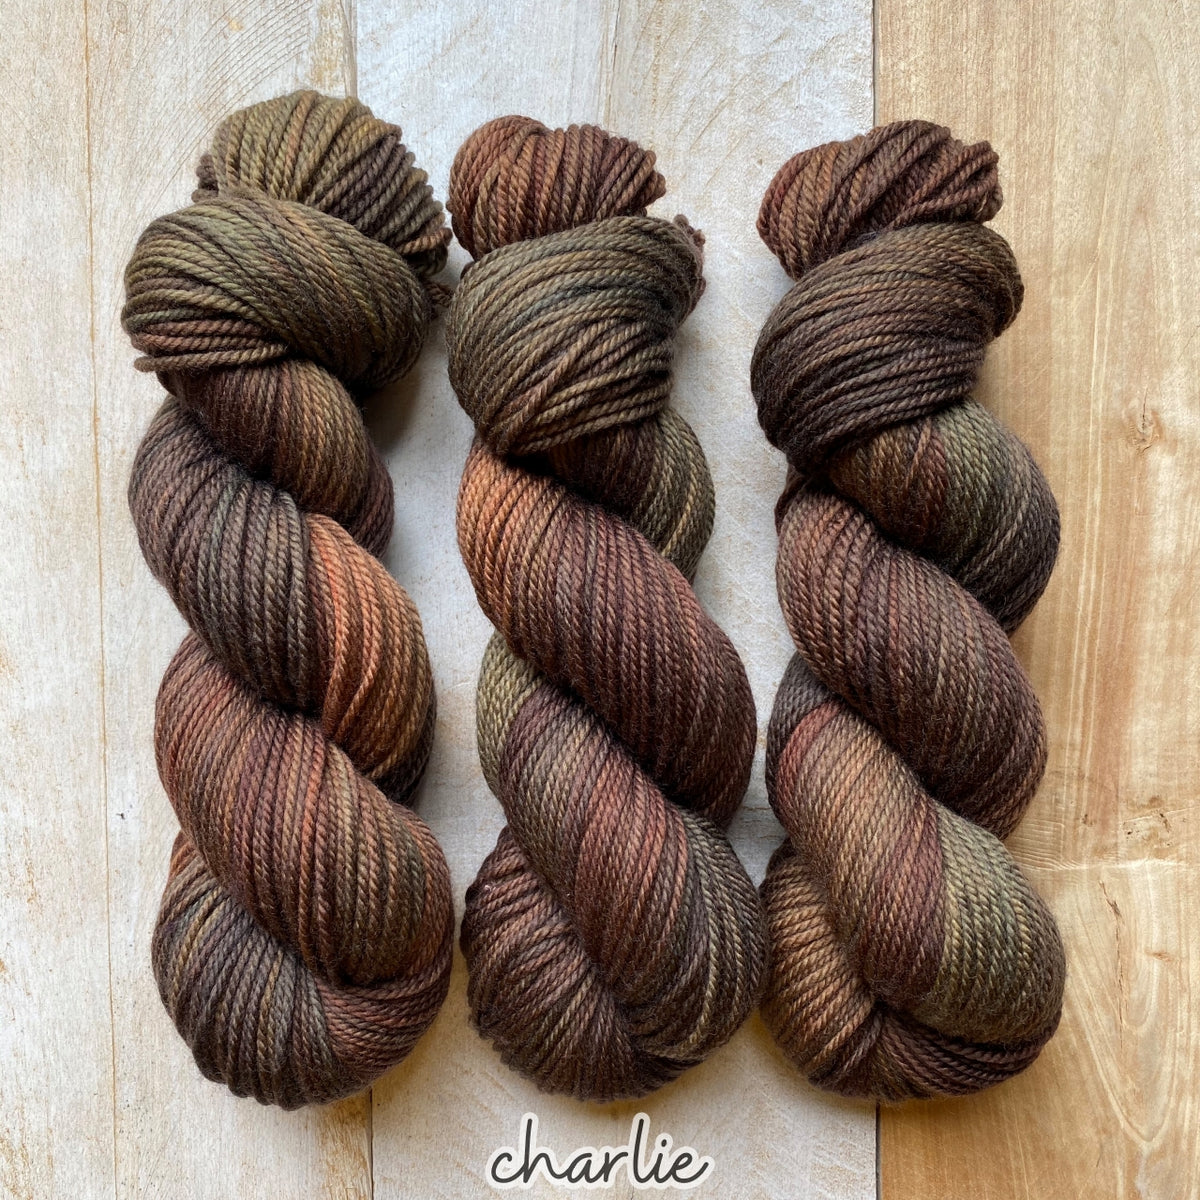 CHARLIE by Louise Robert Design | MERINO WORSTED hand-dyed Variegated yarn